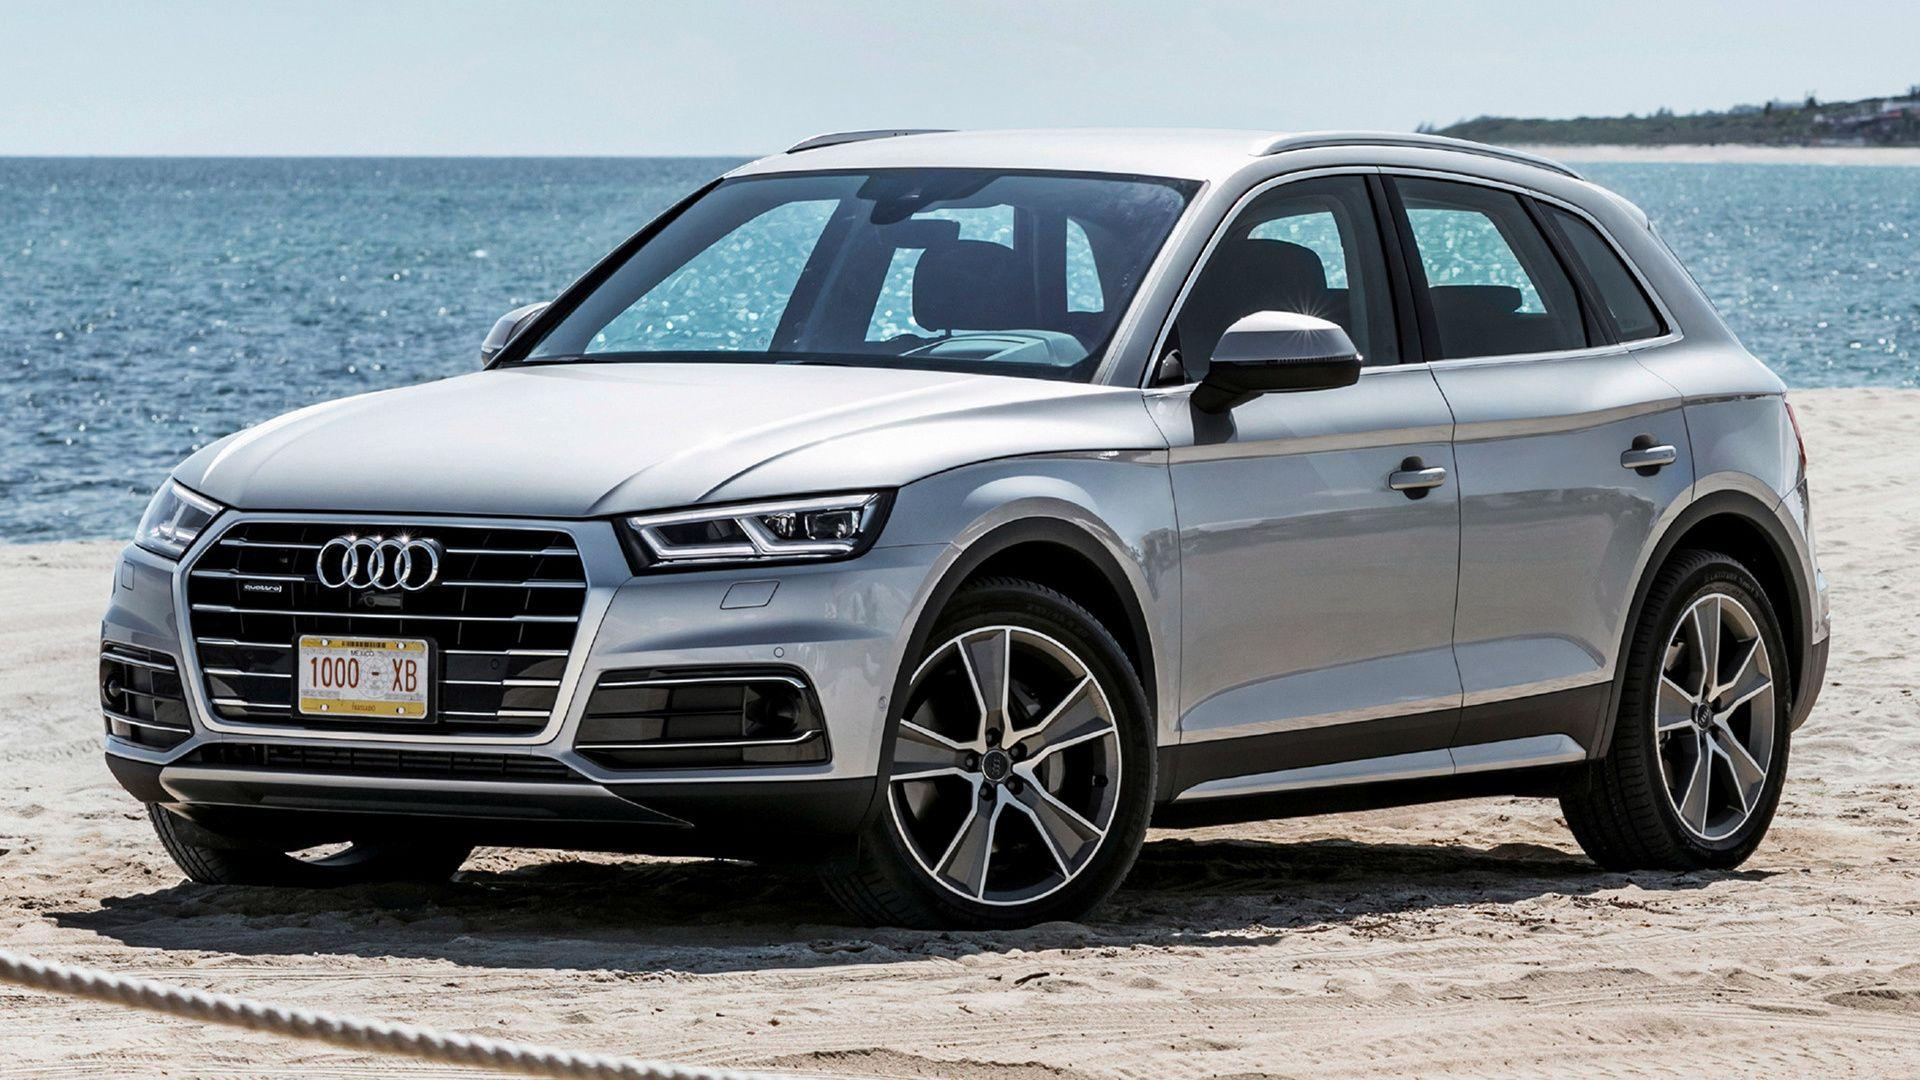 Audi Q5 (2017) Wallpapers and HD Images - Car Pixel